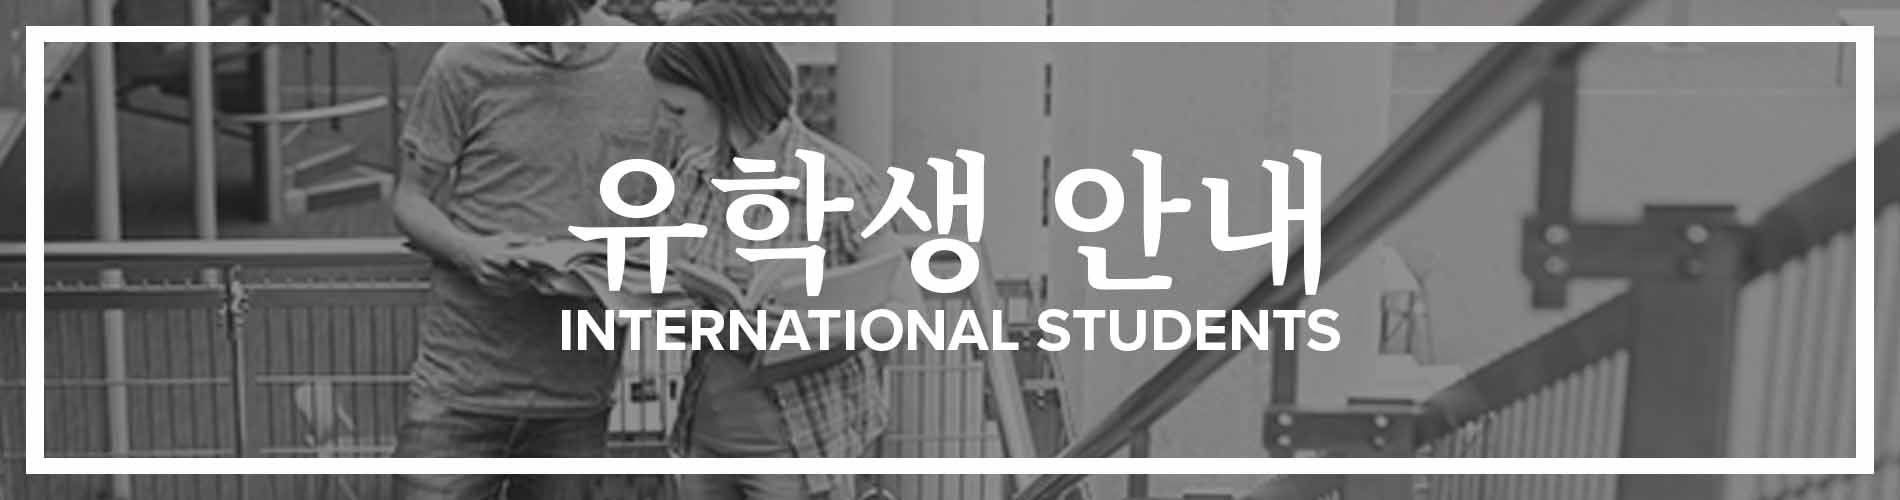 Korean International Students Banner